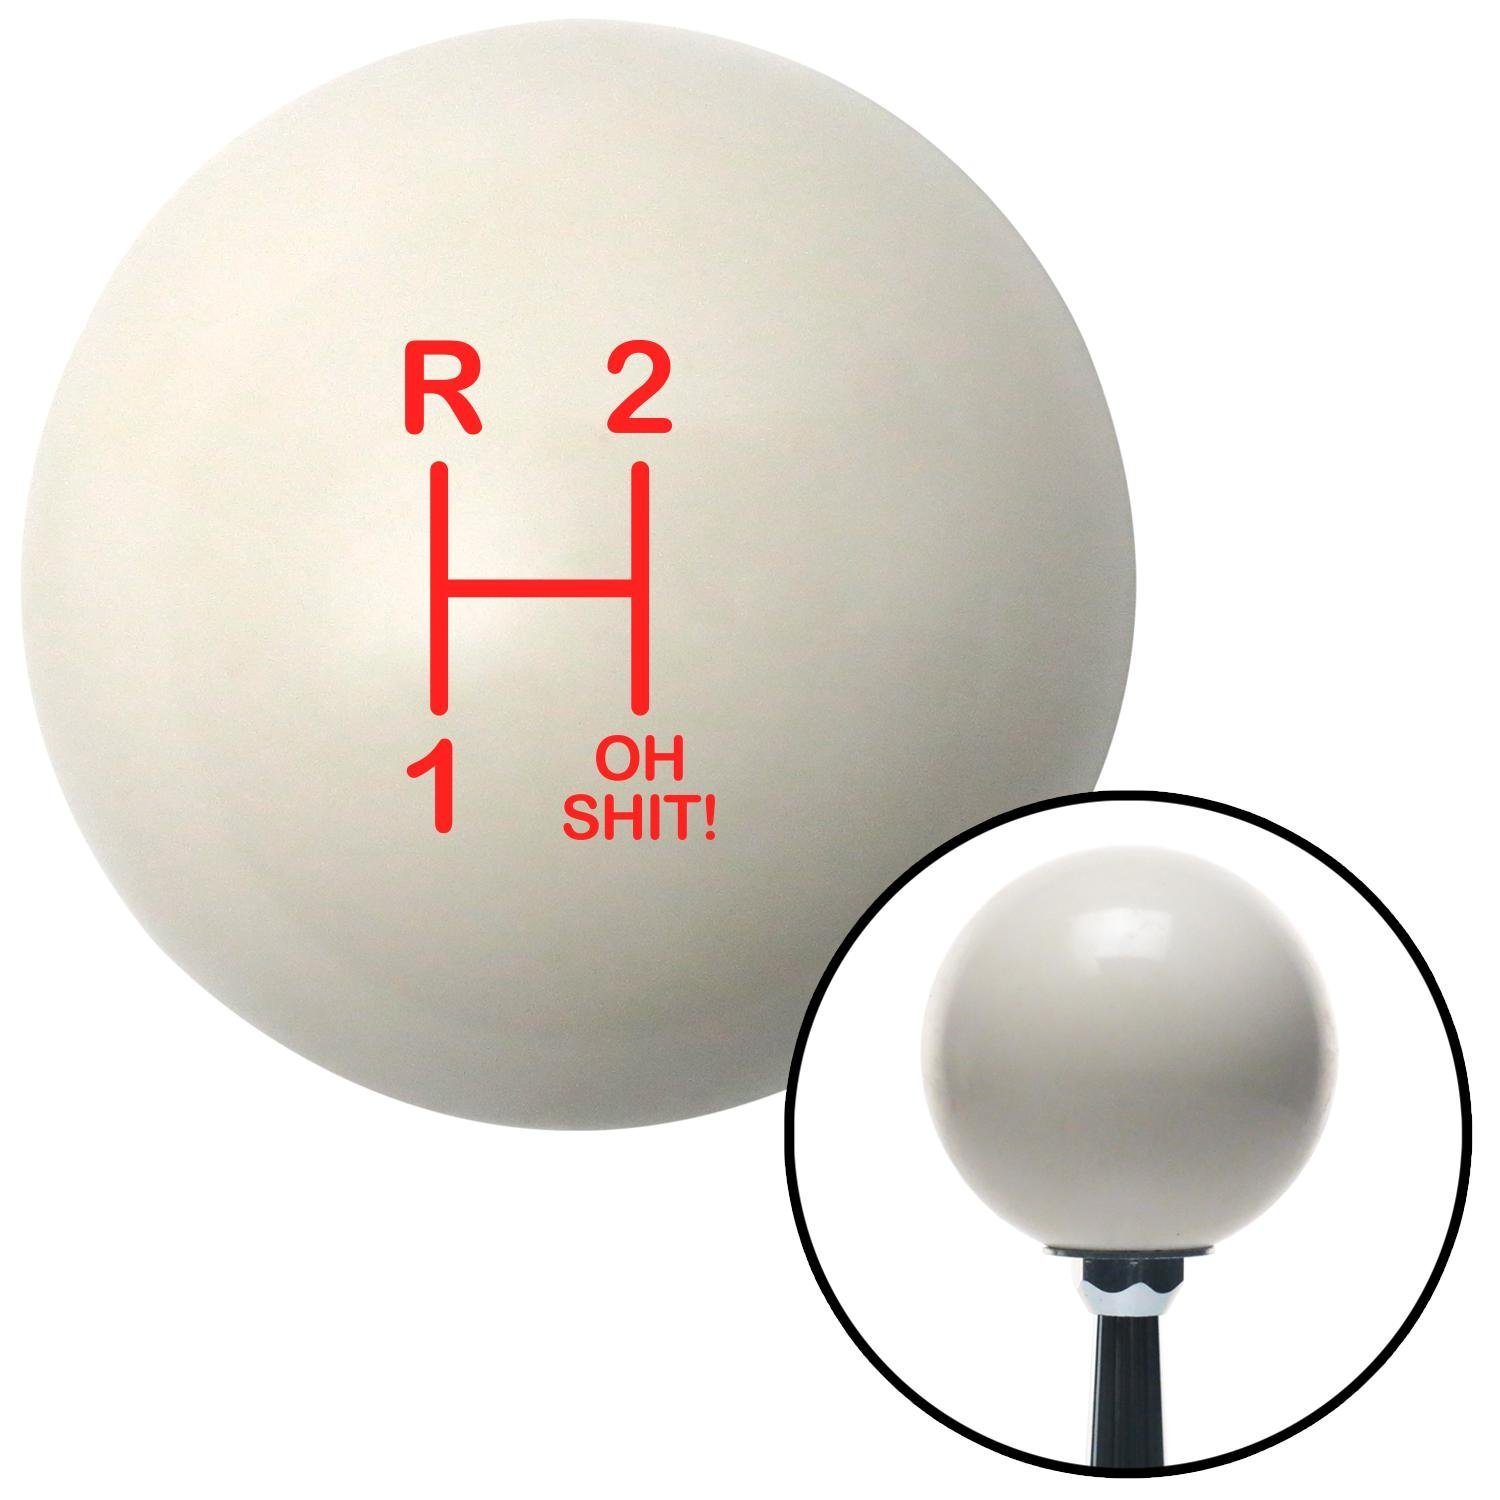 American Shifter 77037 Ivory Shift Knob with M16 x 1.5 Insert Red Shift Pattern OS11n